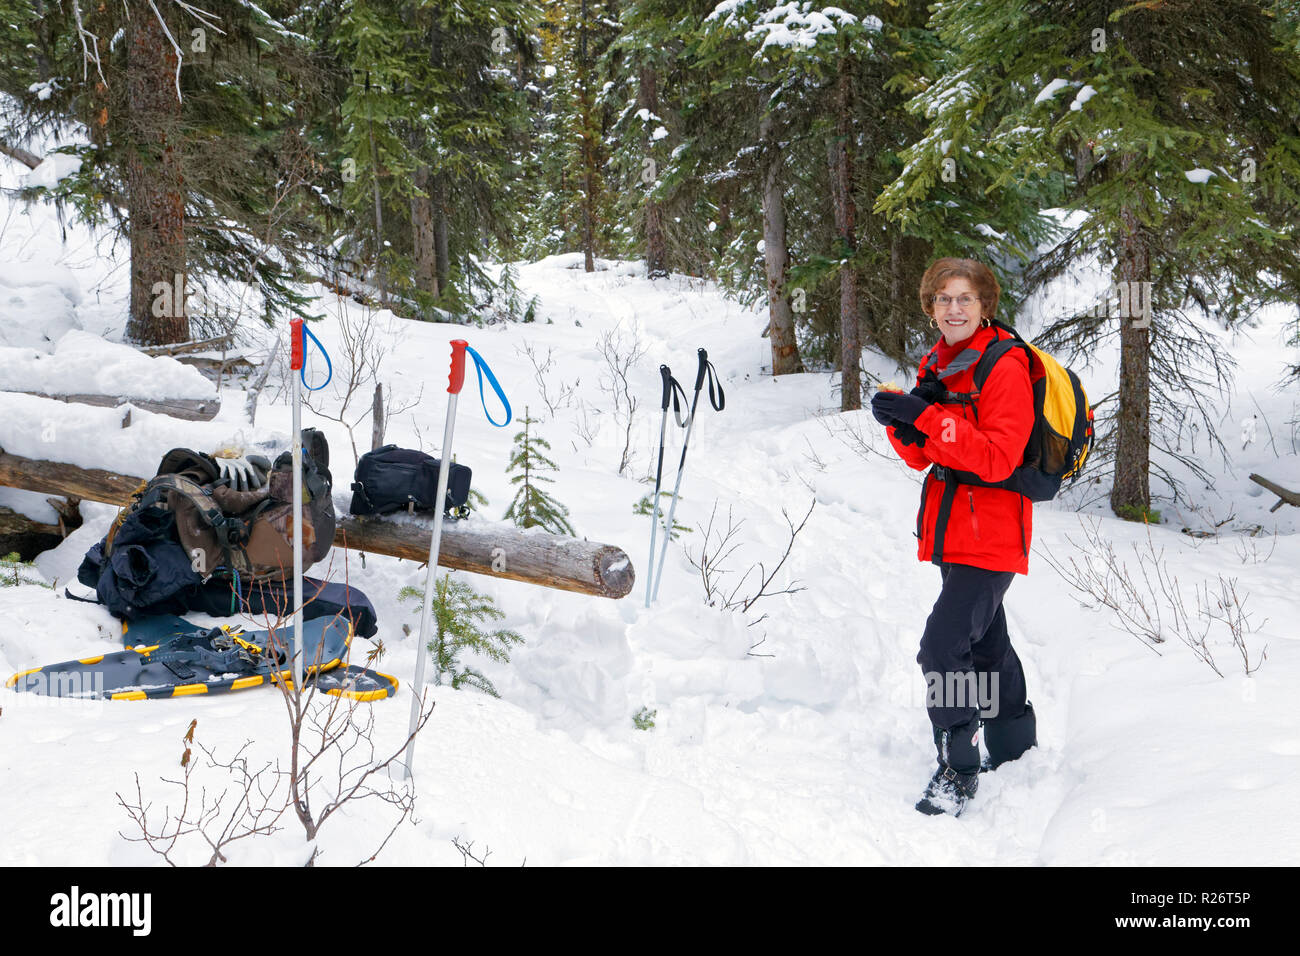 42,755.09690 AZ Meg lunch stop Upper Moose Lake Trail SC - Stock Image